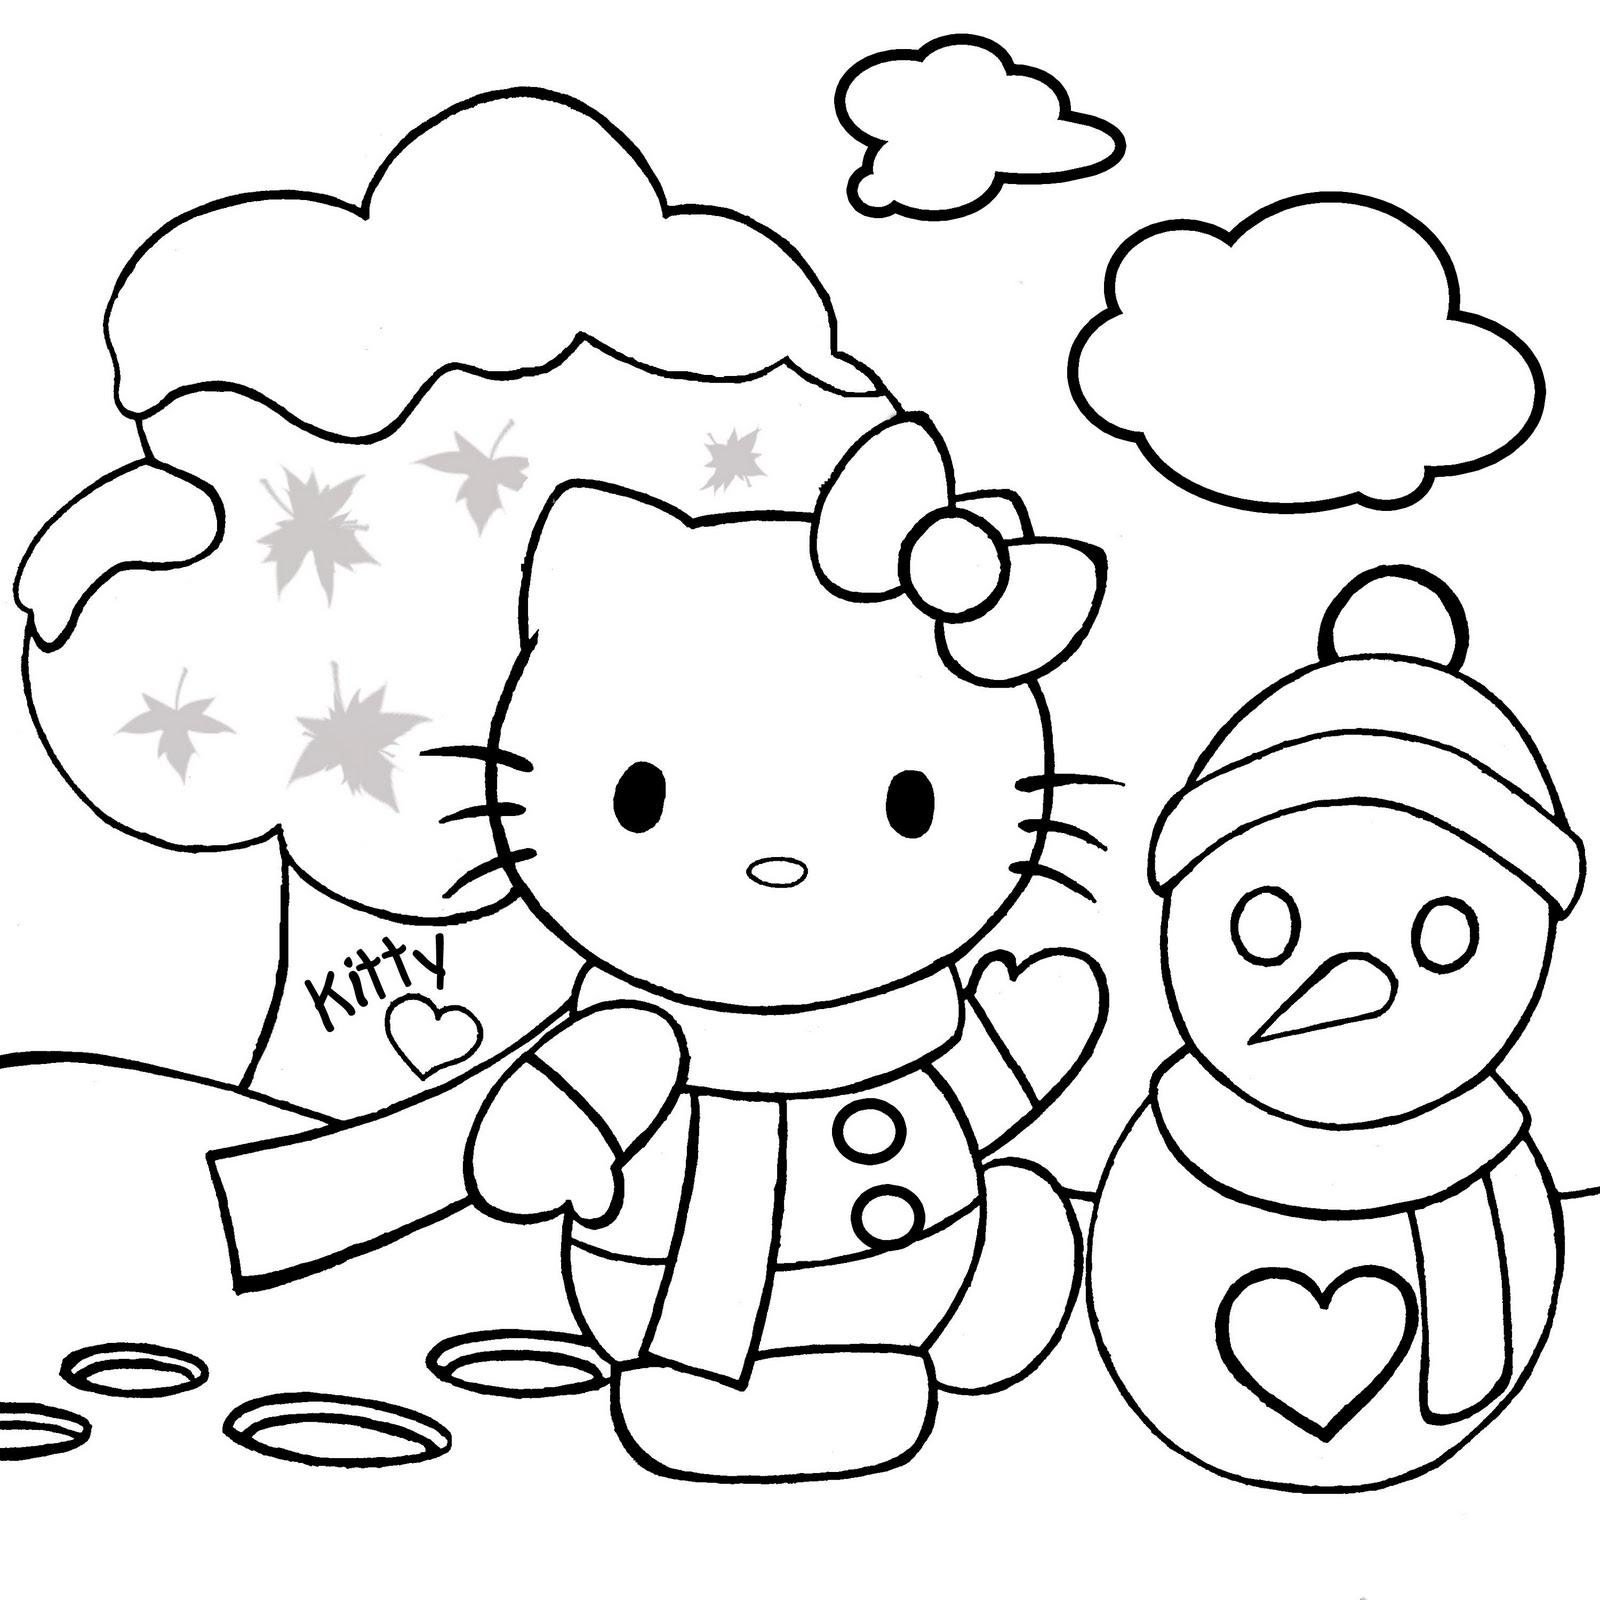 hello kitty holiday coloring pages happy christmas hello kitty s christmas tree 0e4e coloring pages hello coloring holiday kitty